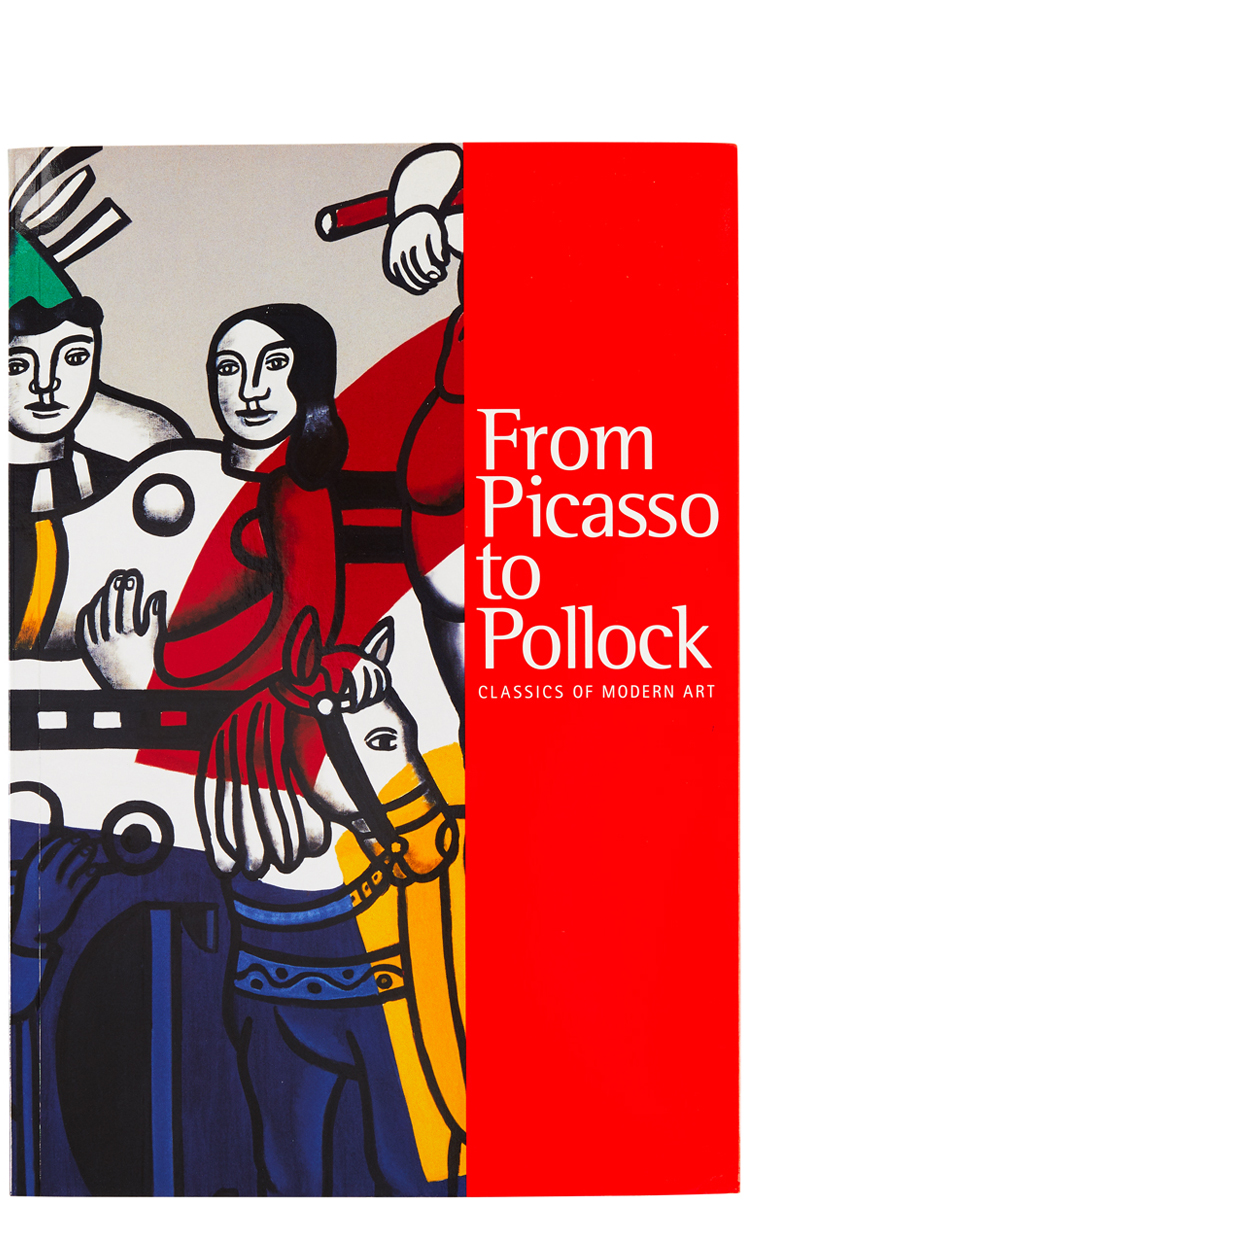 From Picasso to Pollock: Classics of Modern Art